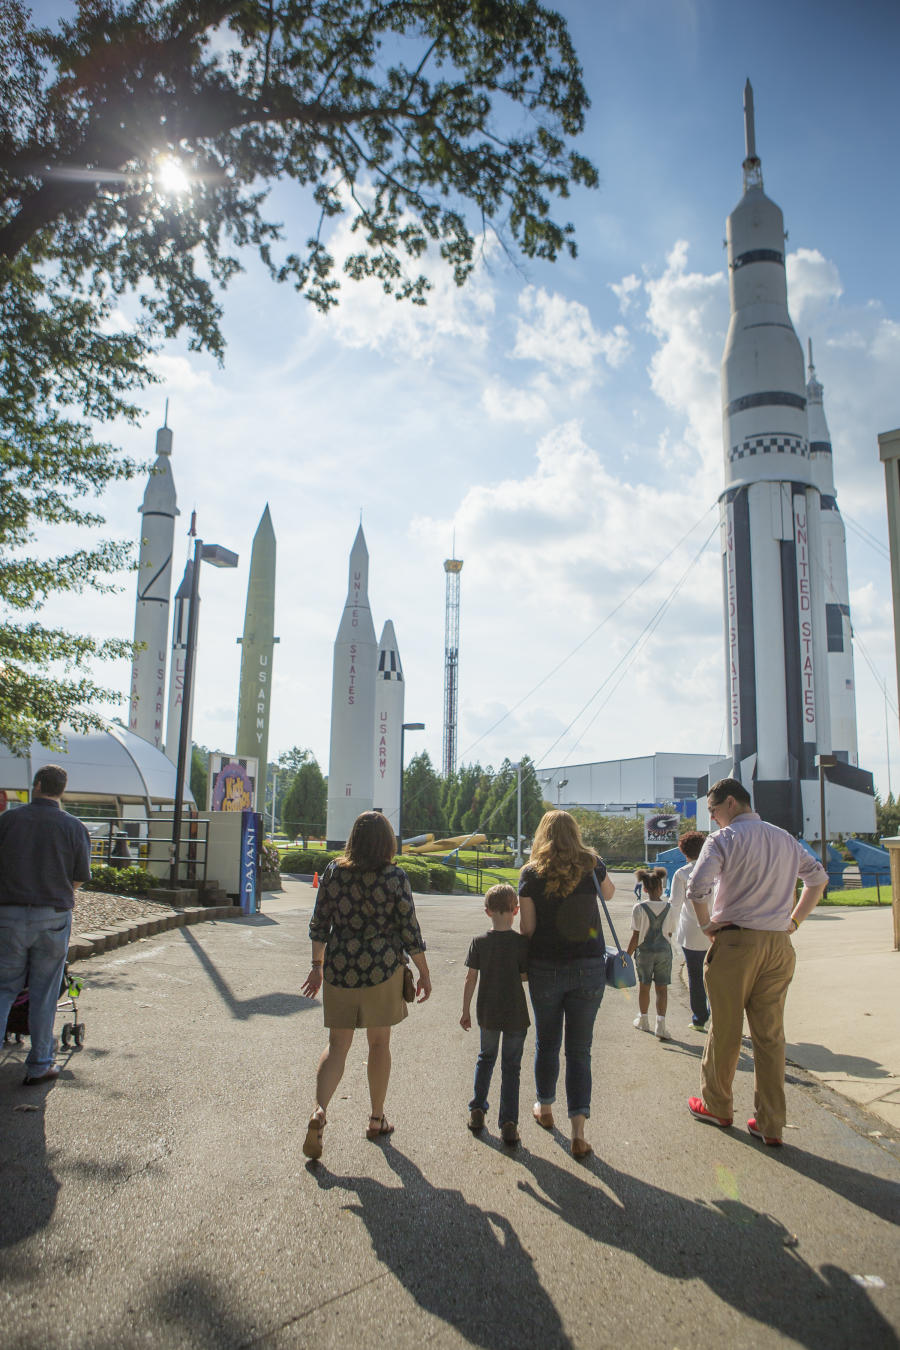 Visitors stand in awe of the outdoor exhibit at the US Space and Rocket Center in Huntsville.